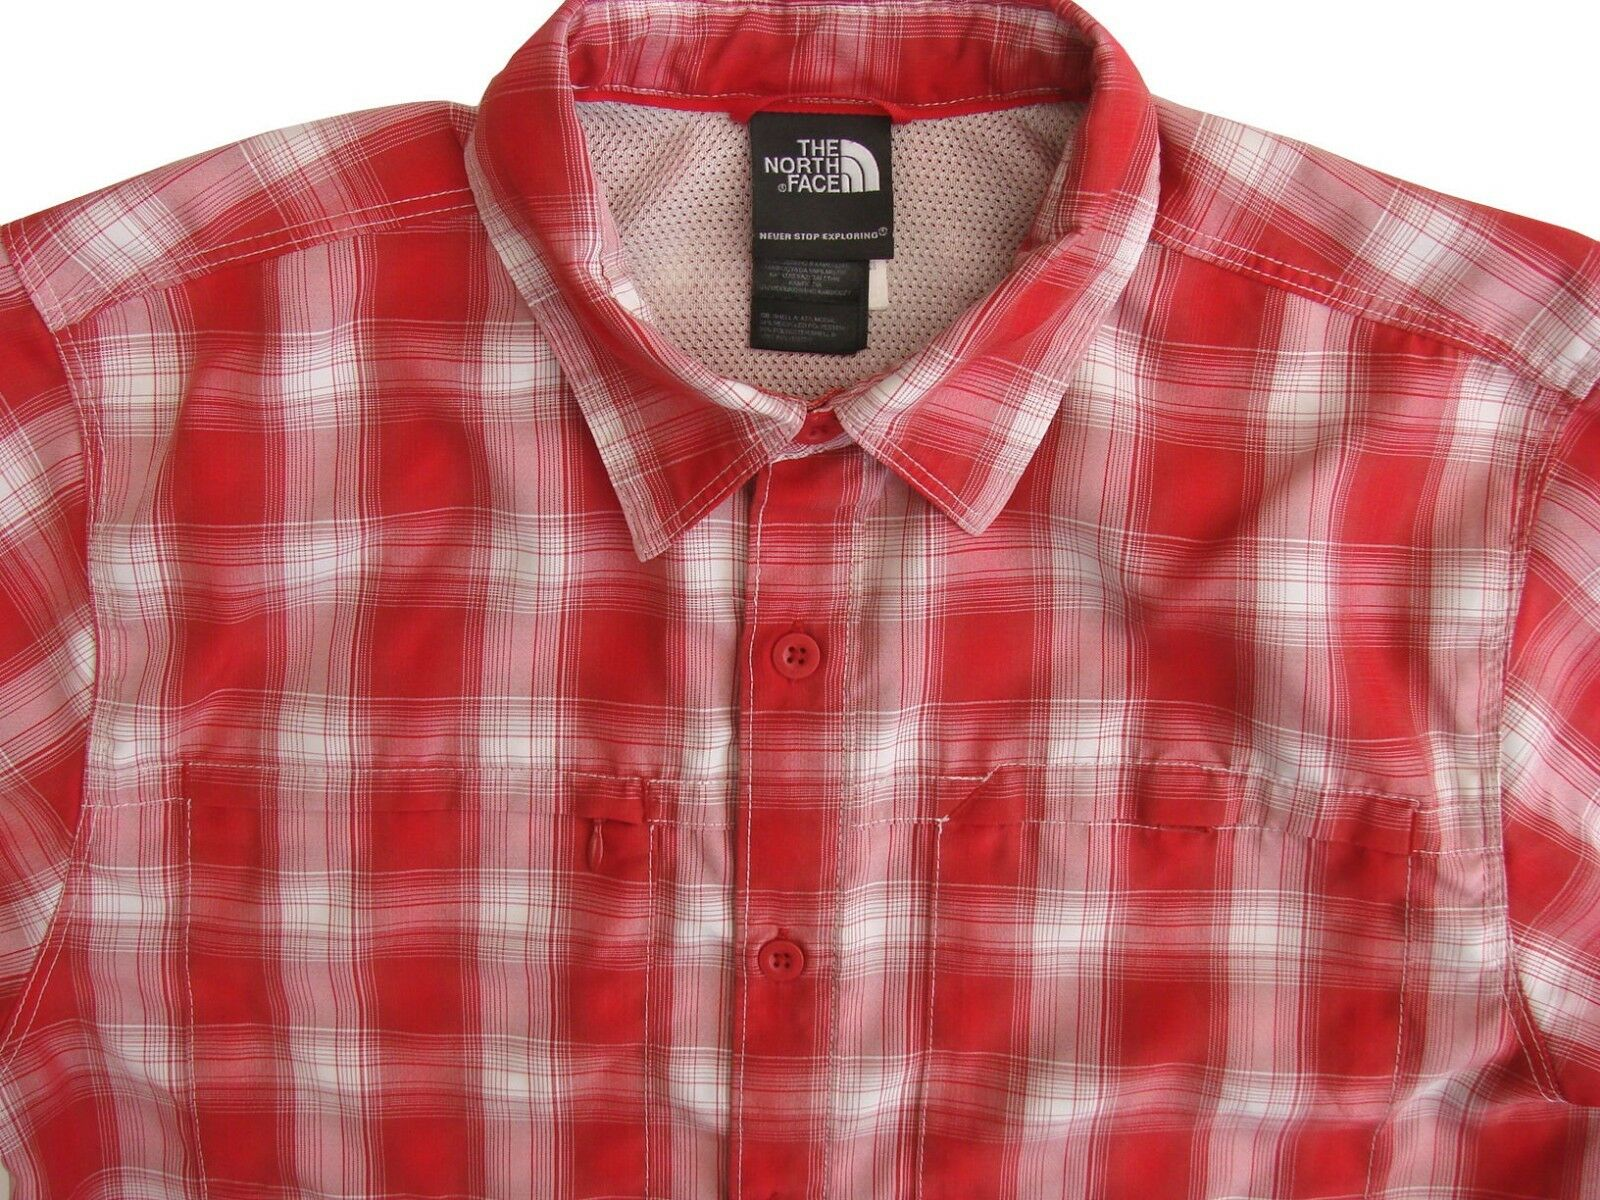 41172a592 THE NORTH FACE Shirt Mens 16 S Red & White Check SHORT SLEEVE